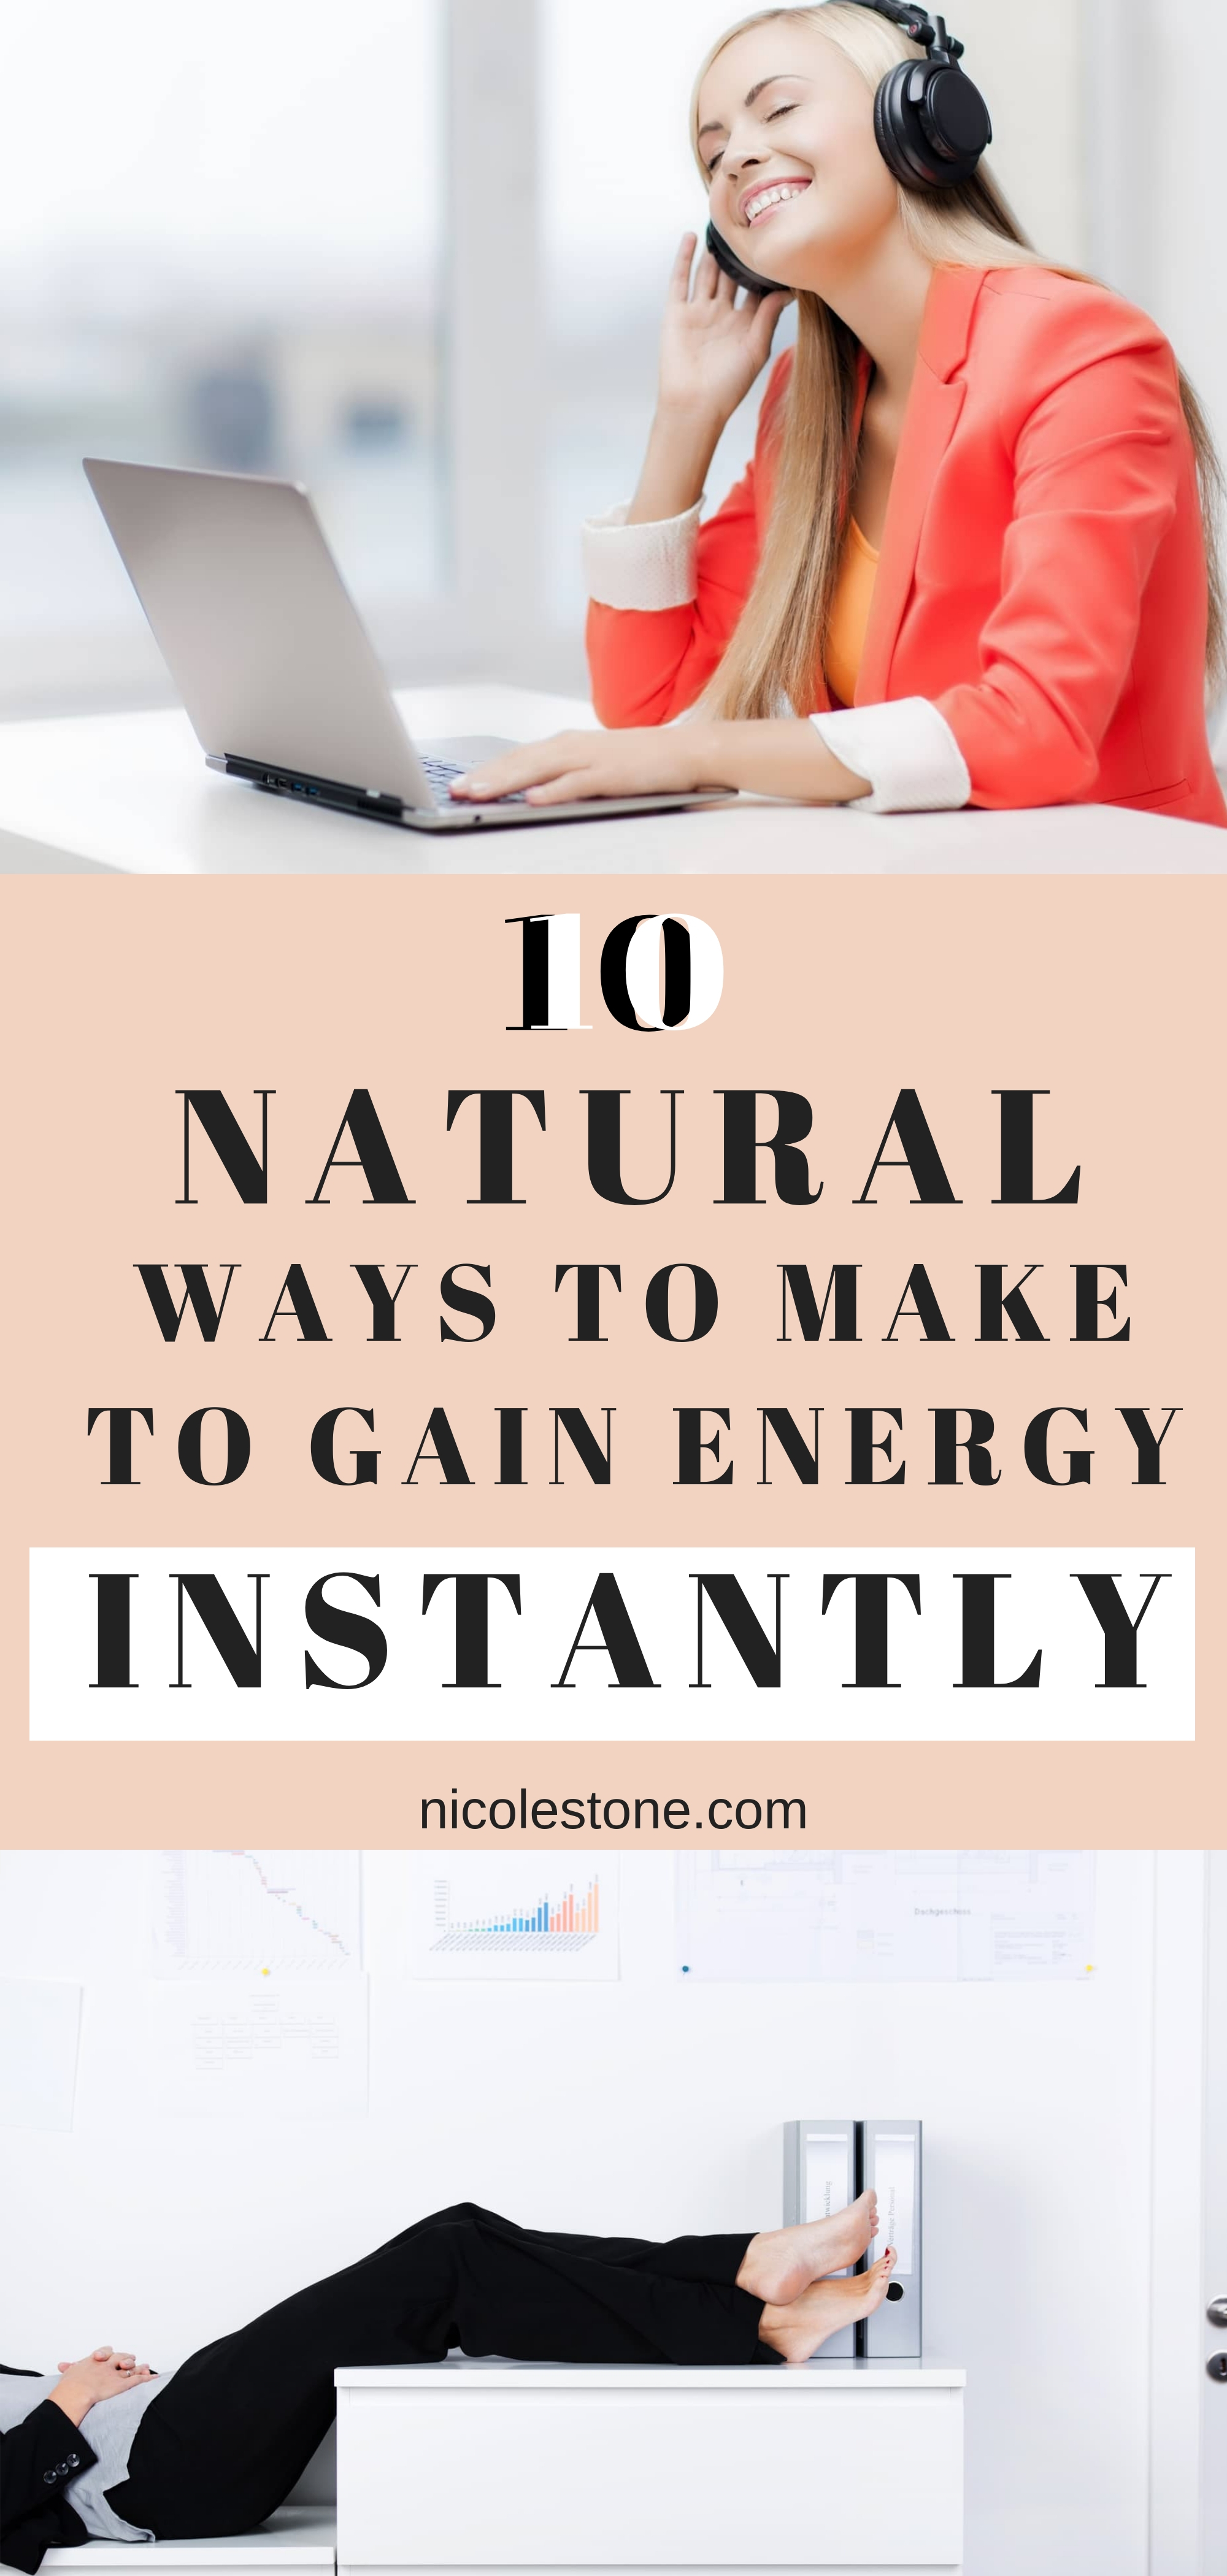 10 Natural Ways to Gain Energy Instantly! You don't need to down energy drinks all day… instead try these 10 natural ways to gain energy instantly! #energy #productivity #healthyhabits #health